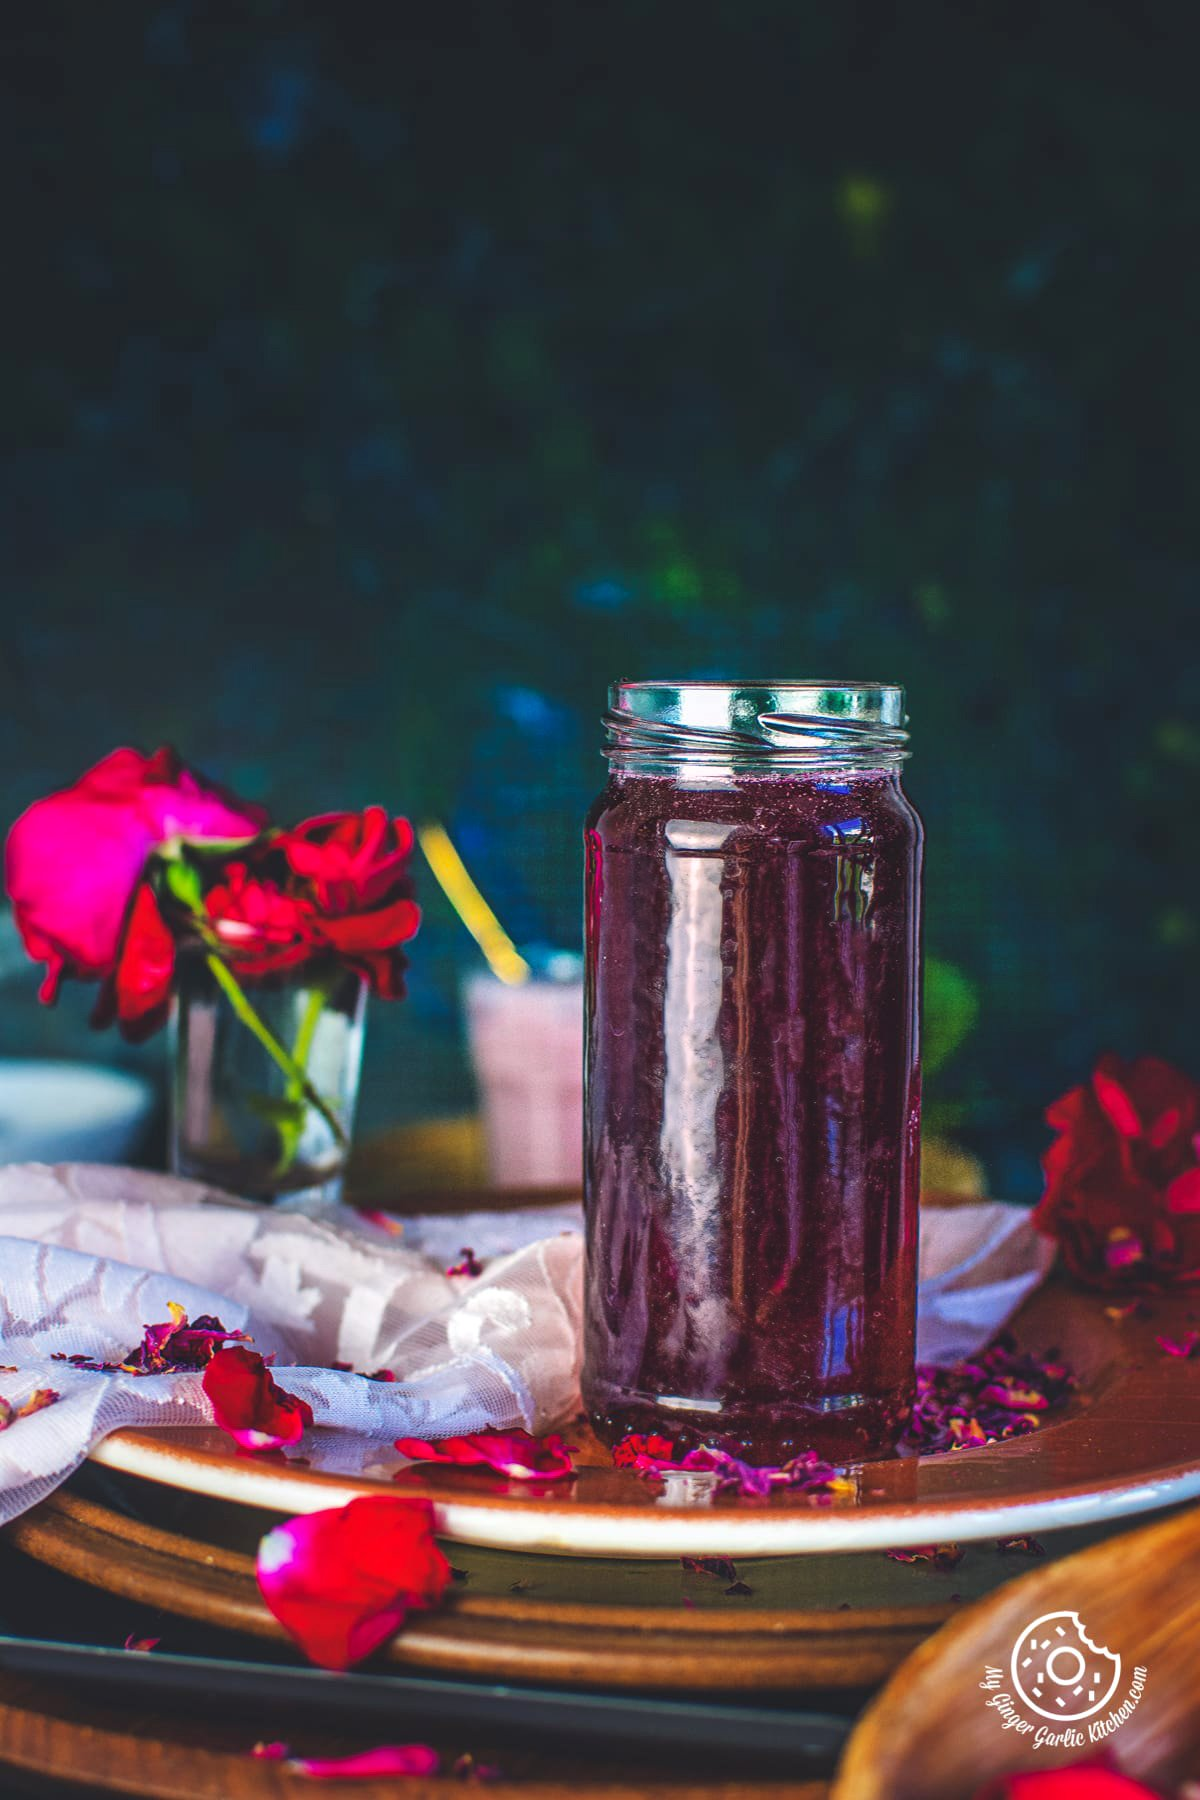 homemade rose syrup in glass bottle